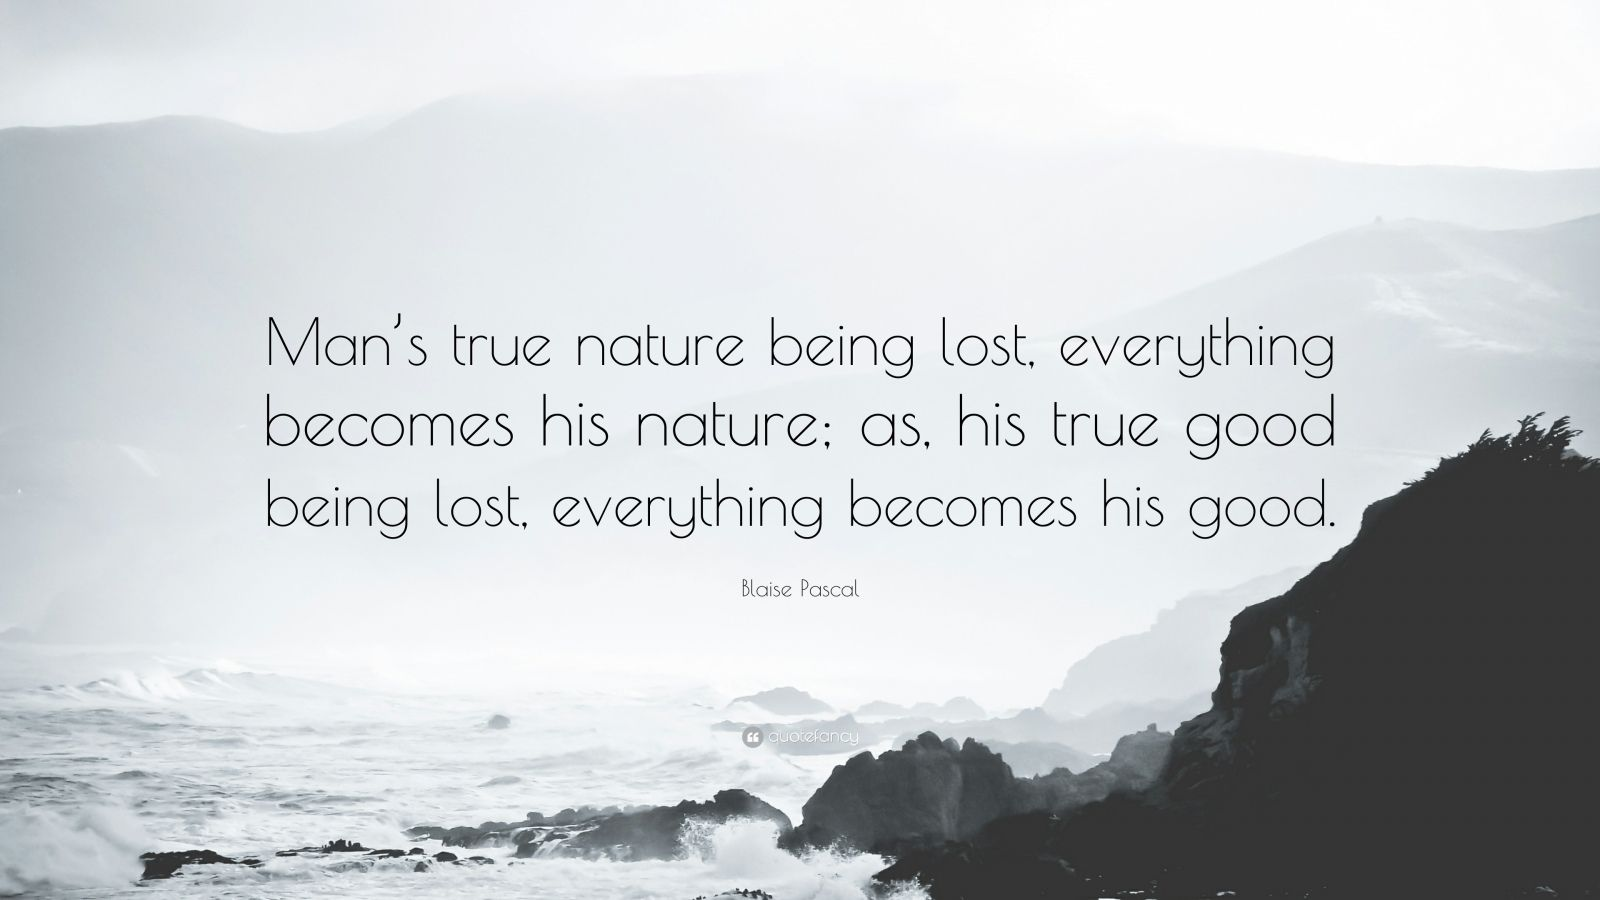 """Blaise Pascal Quote: """"Man's true nature being lost, everything becomes his nature; as, his true good being lost, everything becomes his good."""""""